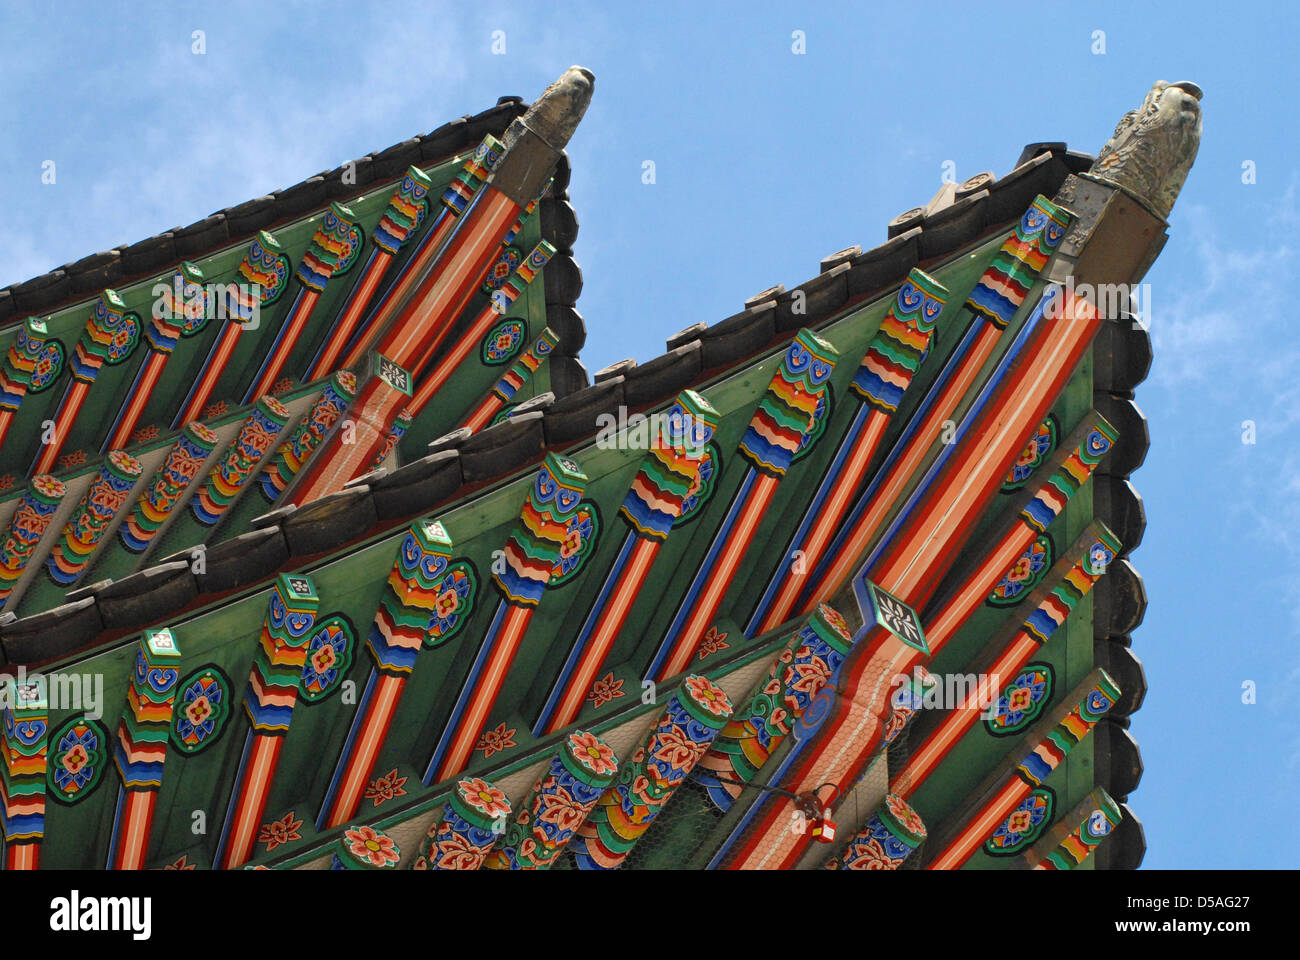 Decorative roof top on building  in Gyeongbok Palace, Seoul, South Korea - Stock Image